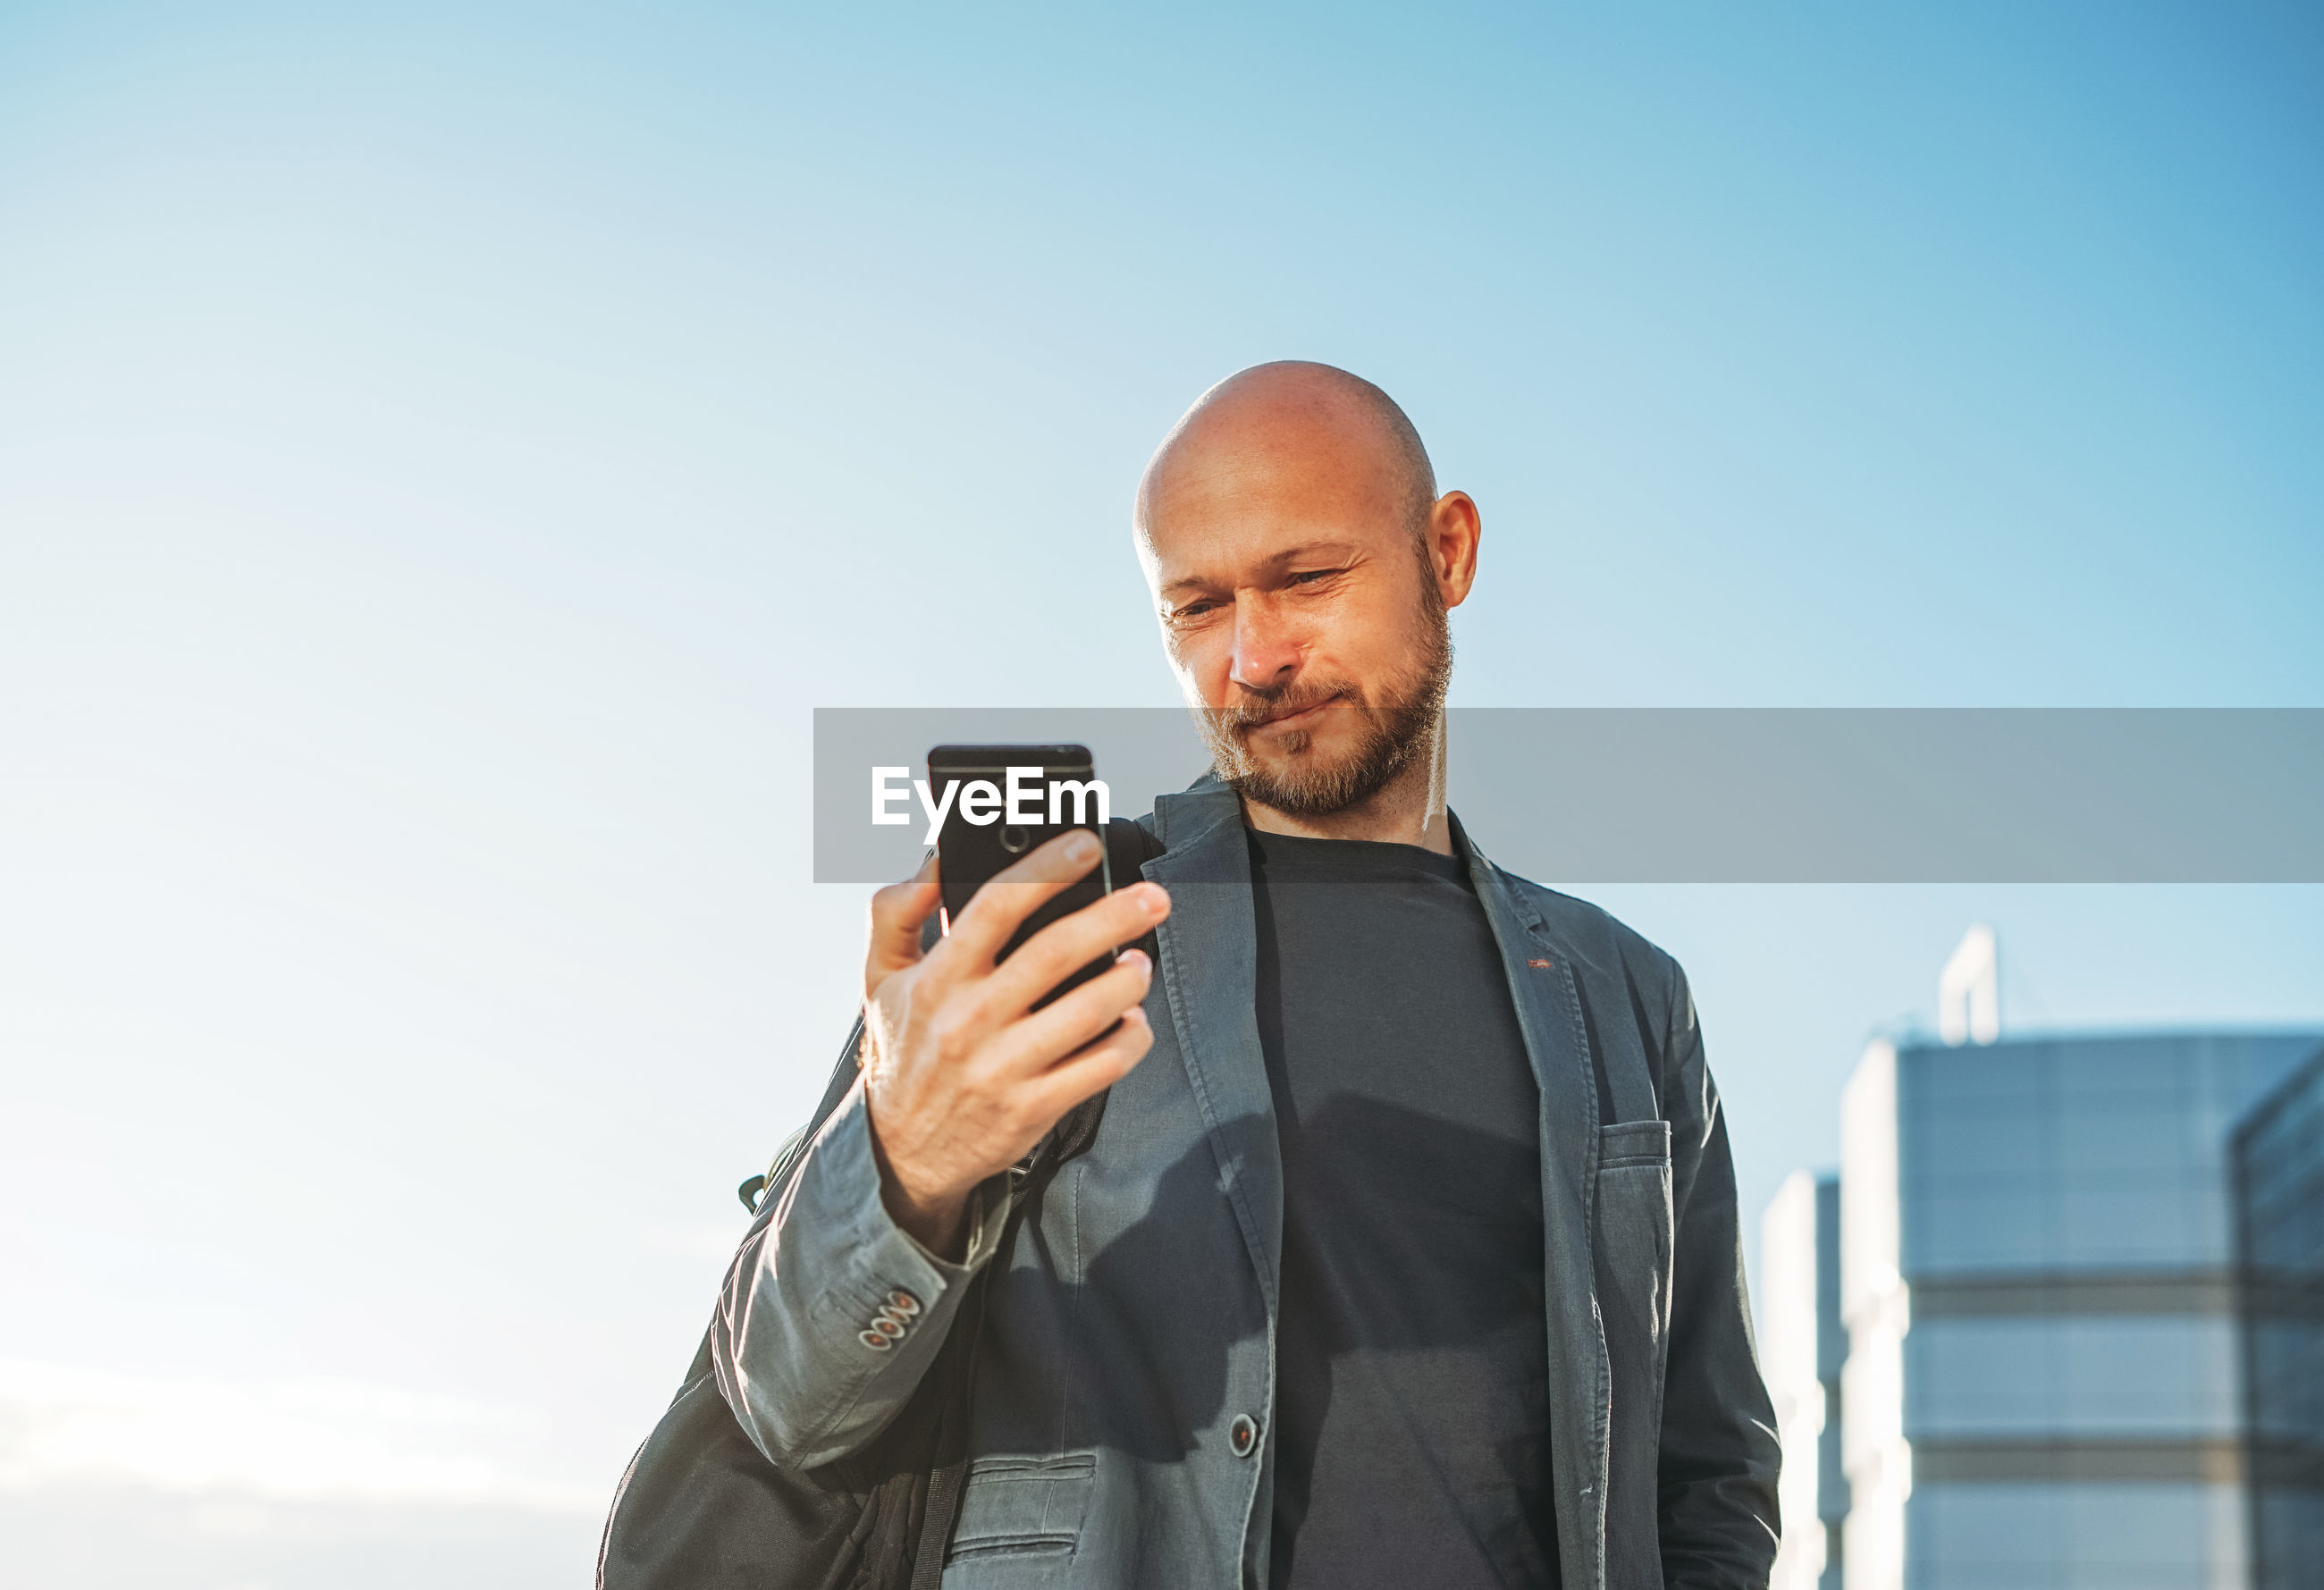 MAN HOLDING SMART PHONE WHILE STANDING ON MOBILE